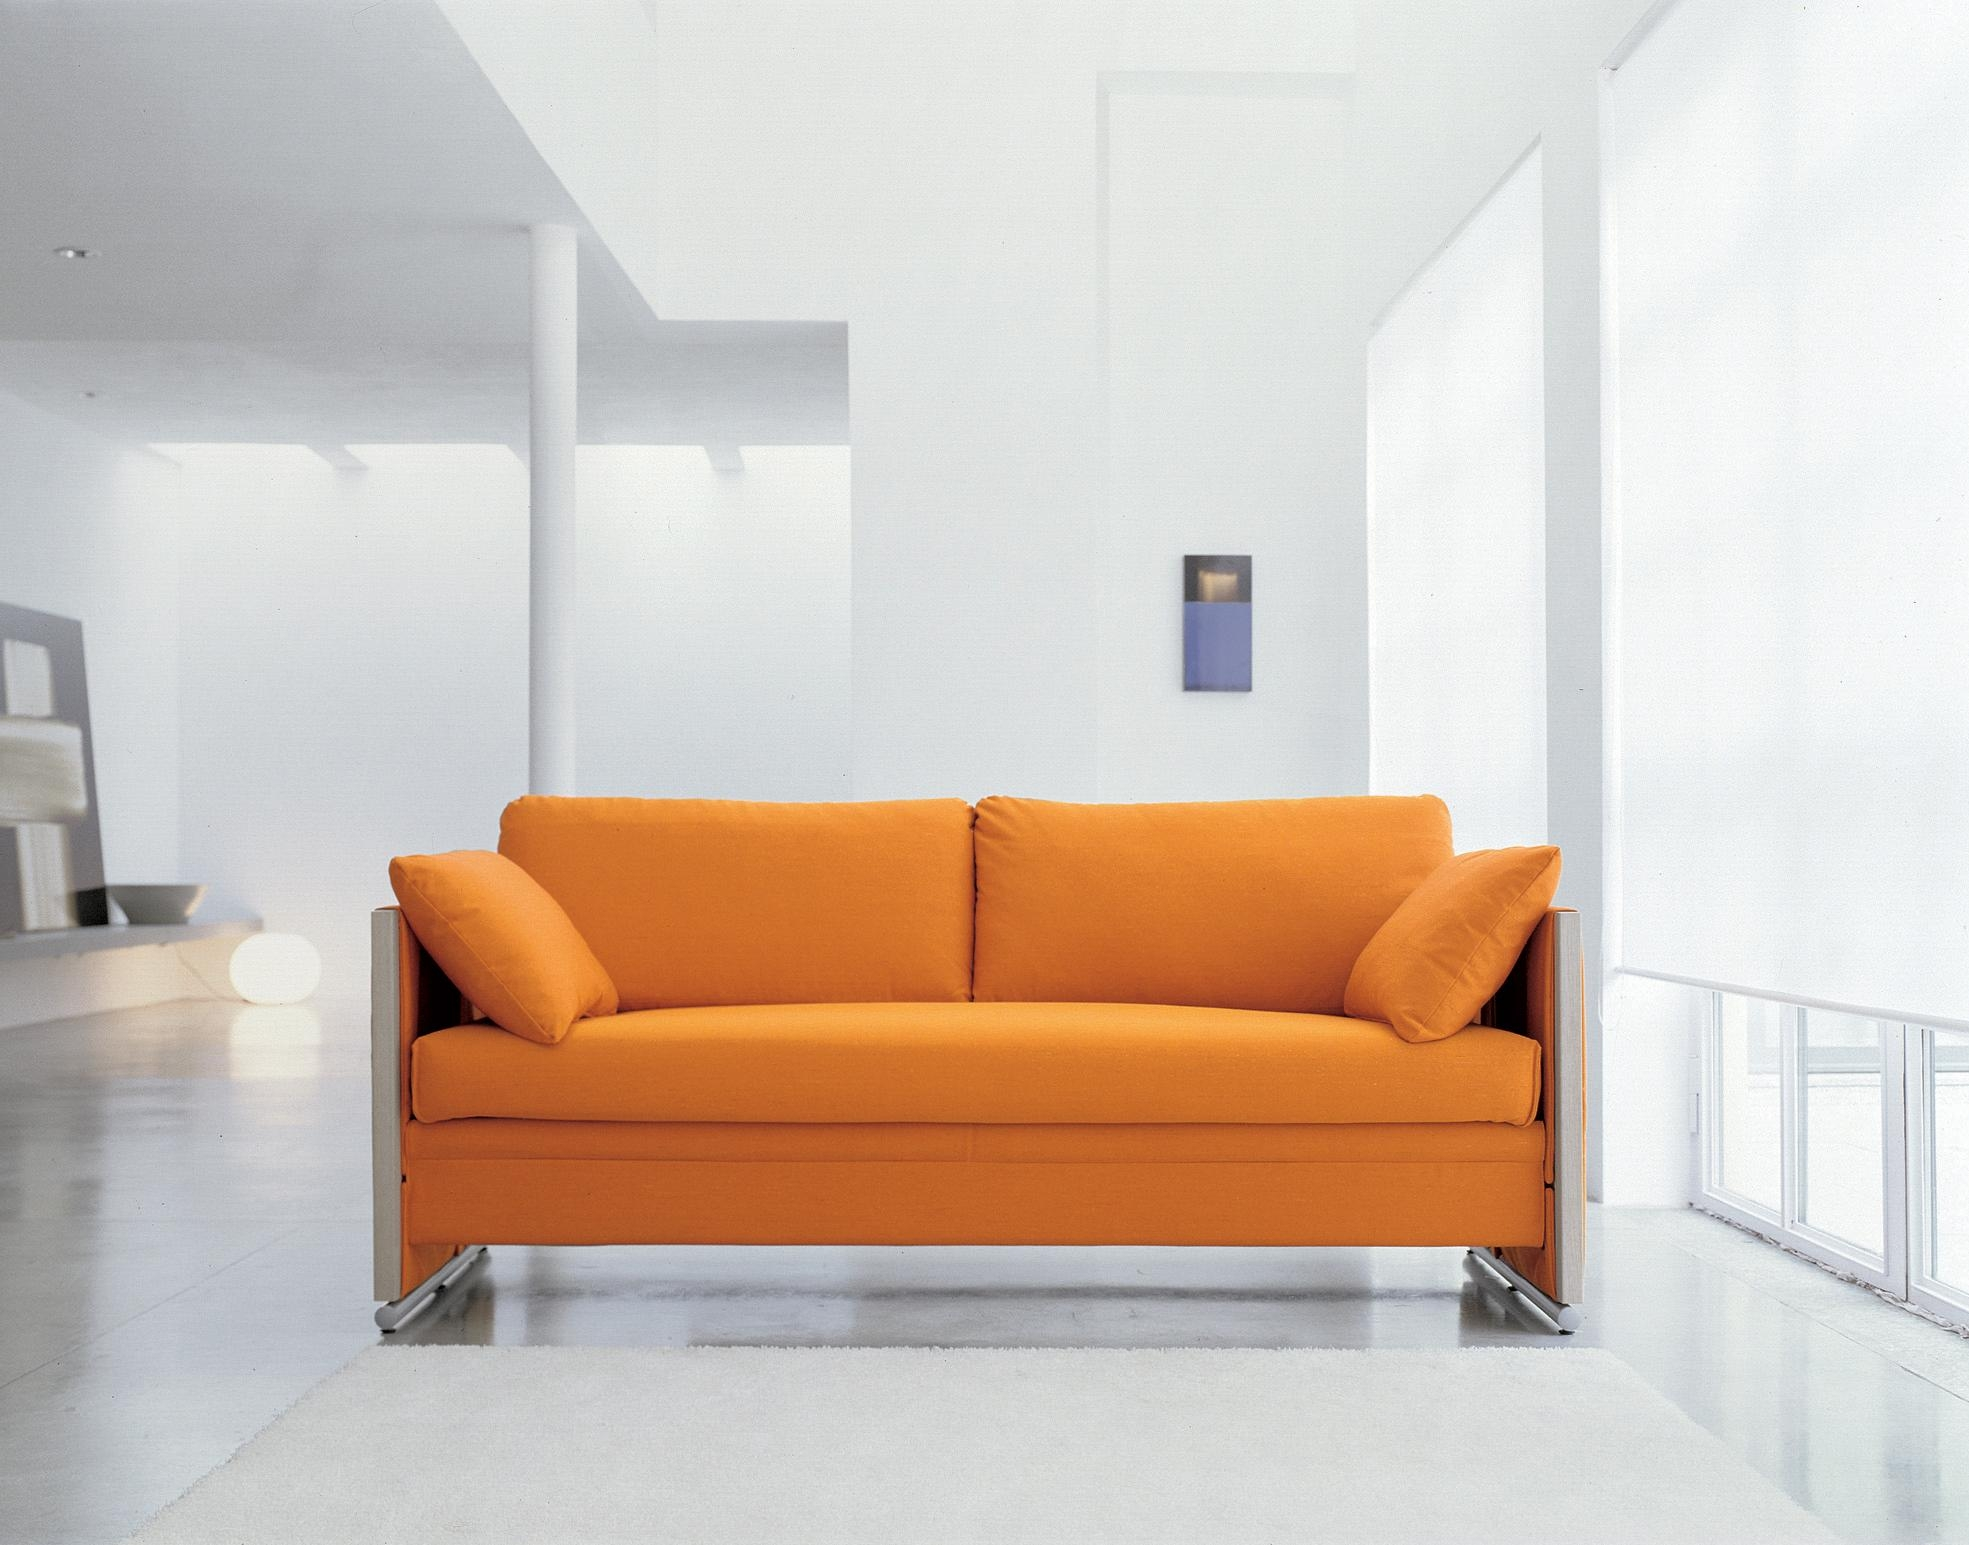 Doc A Sofa Bed That Converts In To A Bunk Bed In Two Secounds Throughout Sofa Bunk Beds (View 14 of 20)